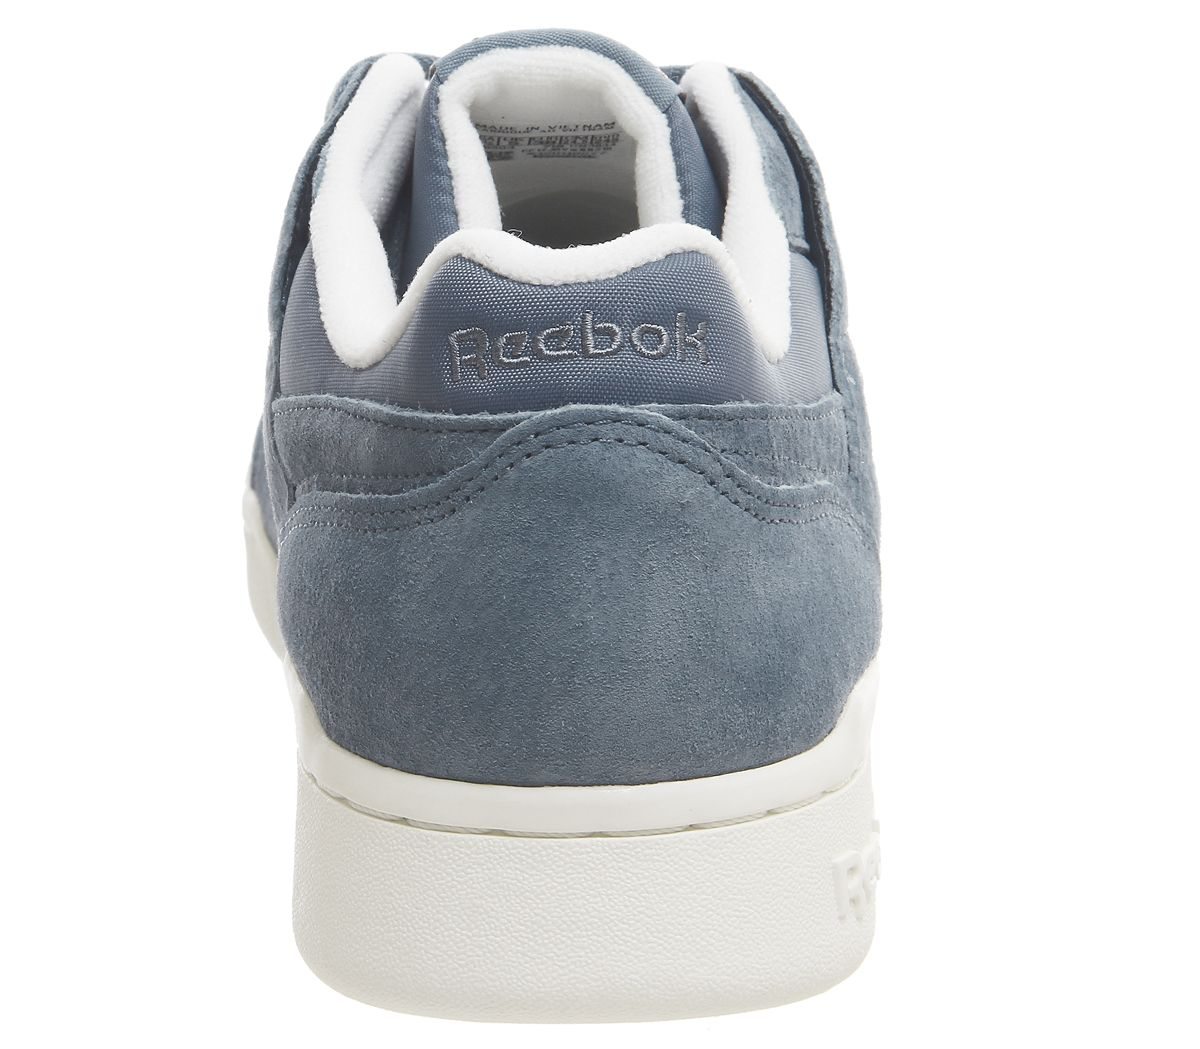 6fc50ff1a29 Reebok Workout Lo Plus Trainers Blue Slate Chalk Brass - Hers trainers